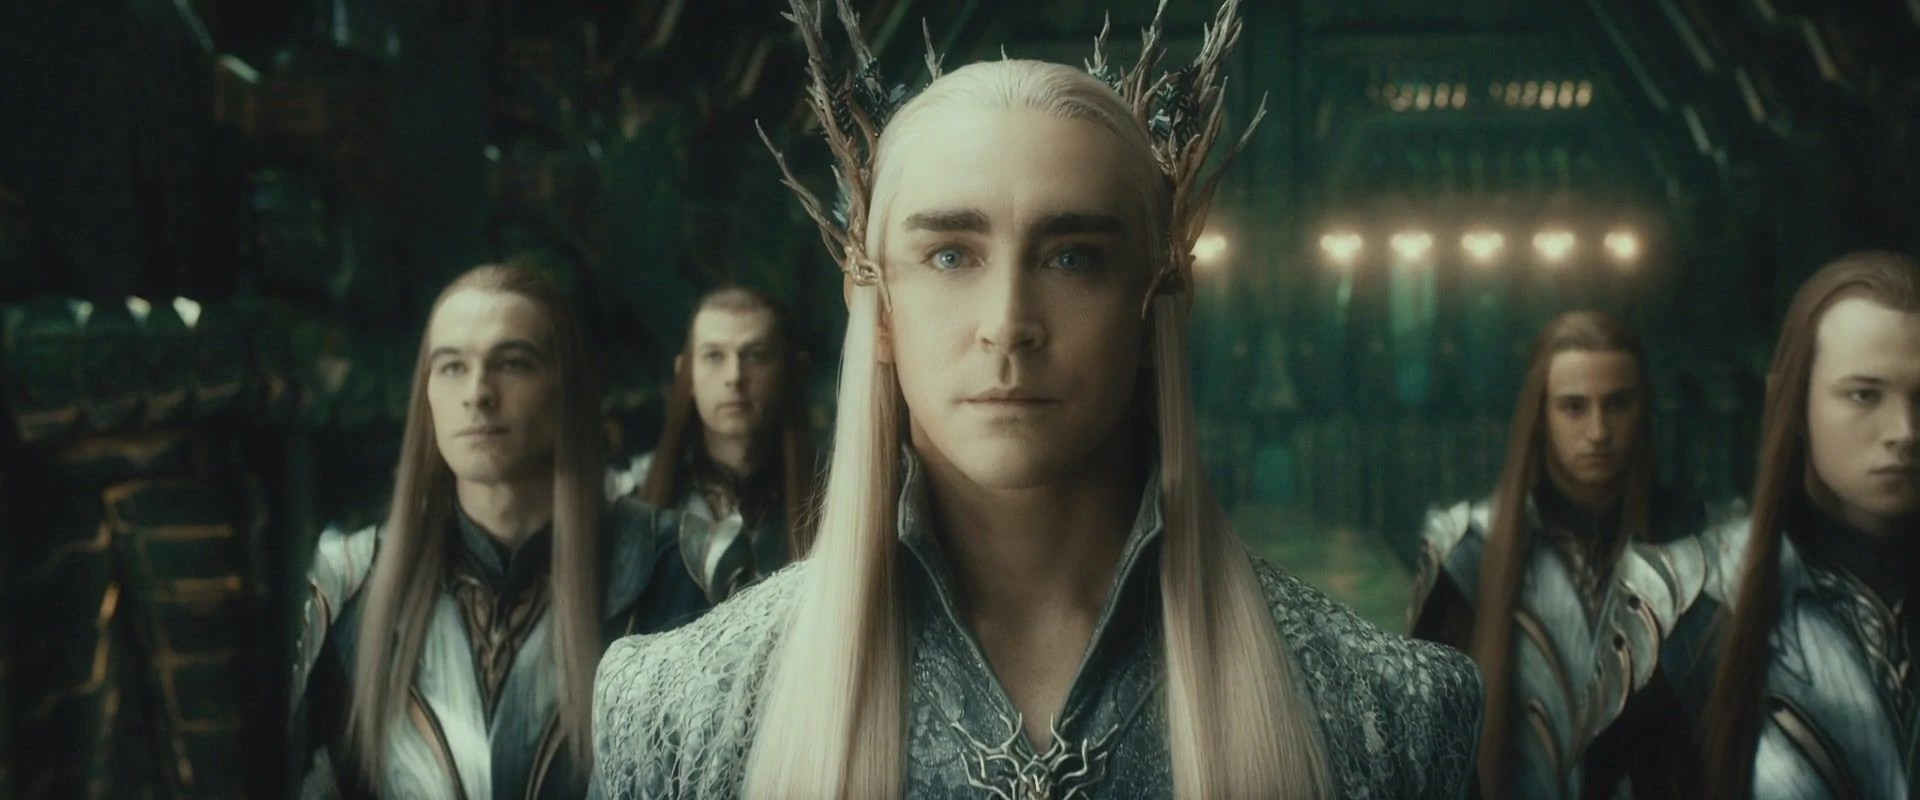 Lee Pace The Fall Wallpaper Thranduil Lord Of The Rings Wiki